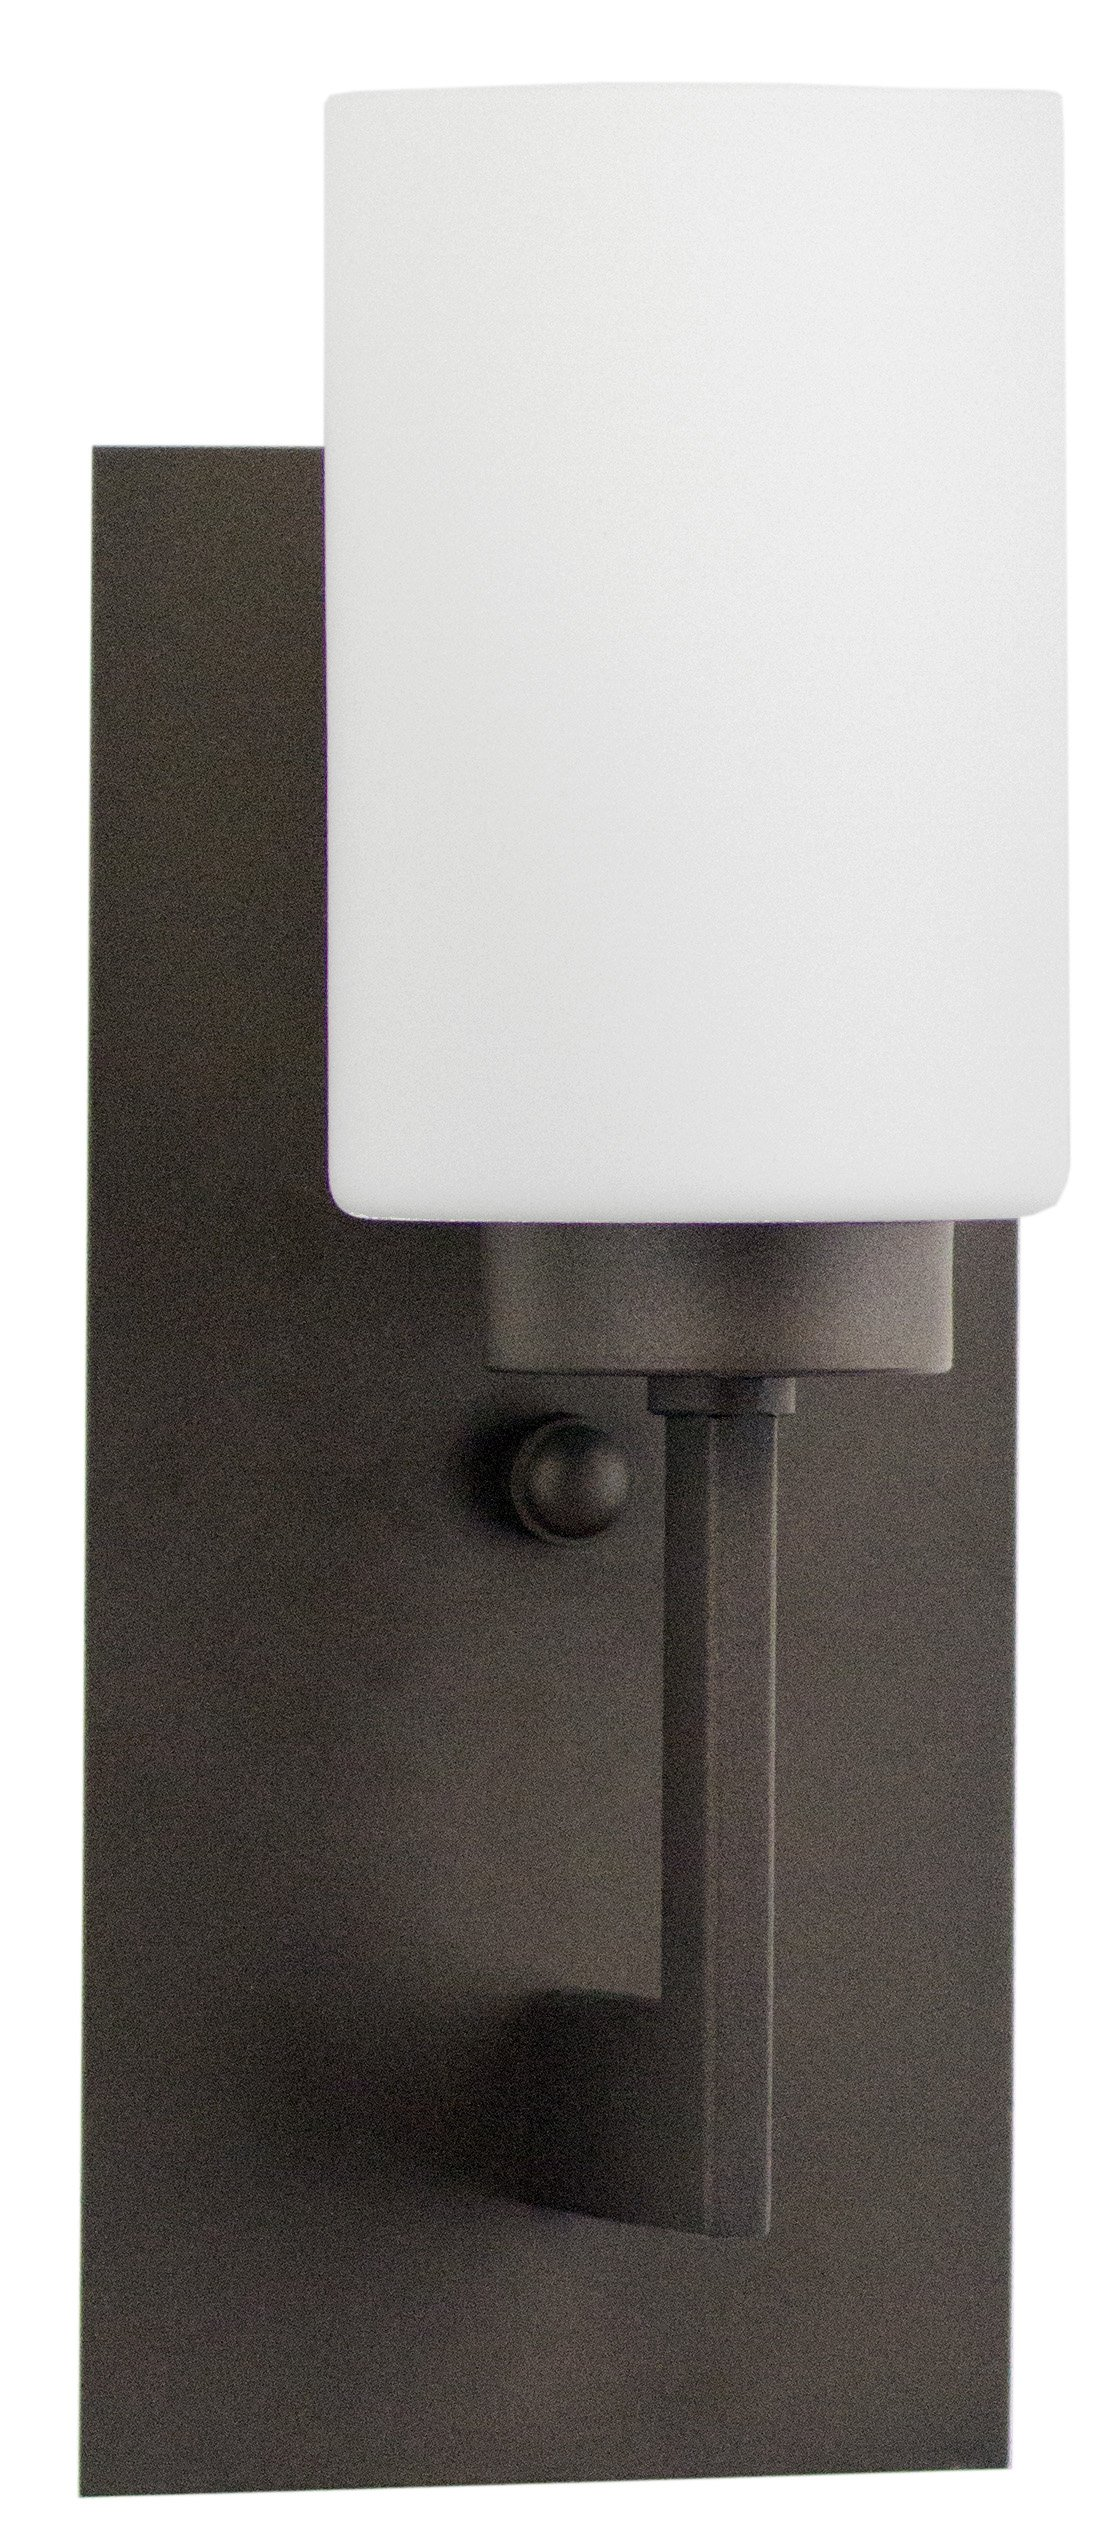 Brio Wall Sconce Light Fixture – Bronze w/ Frosted Glass Shade - Linea di Liara LL-WL151-DB by Linea di Liara